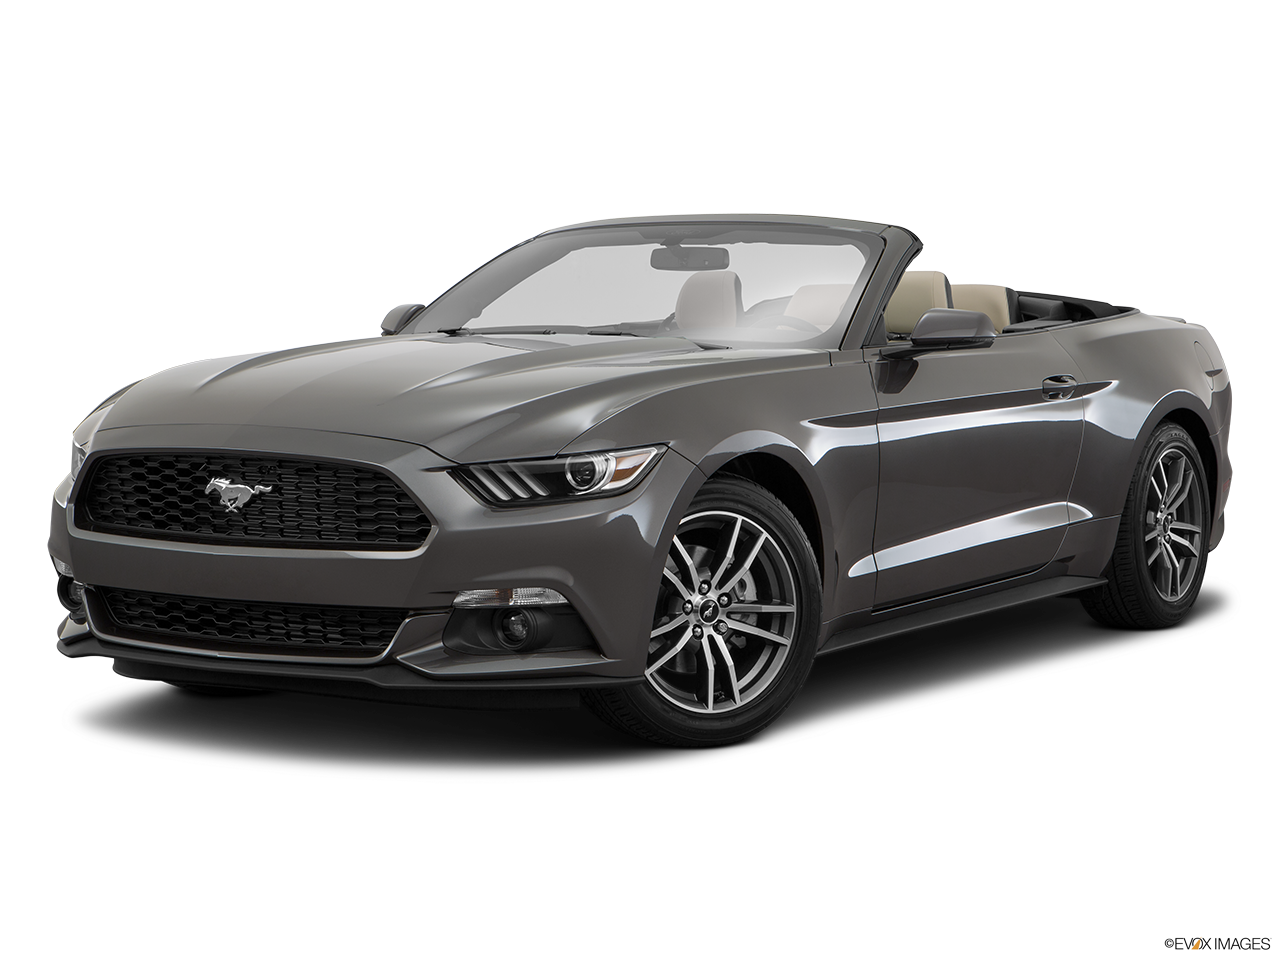 Test Drive A 2016 Ford Mustang at Franklin Ford in Franklin